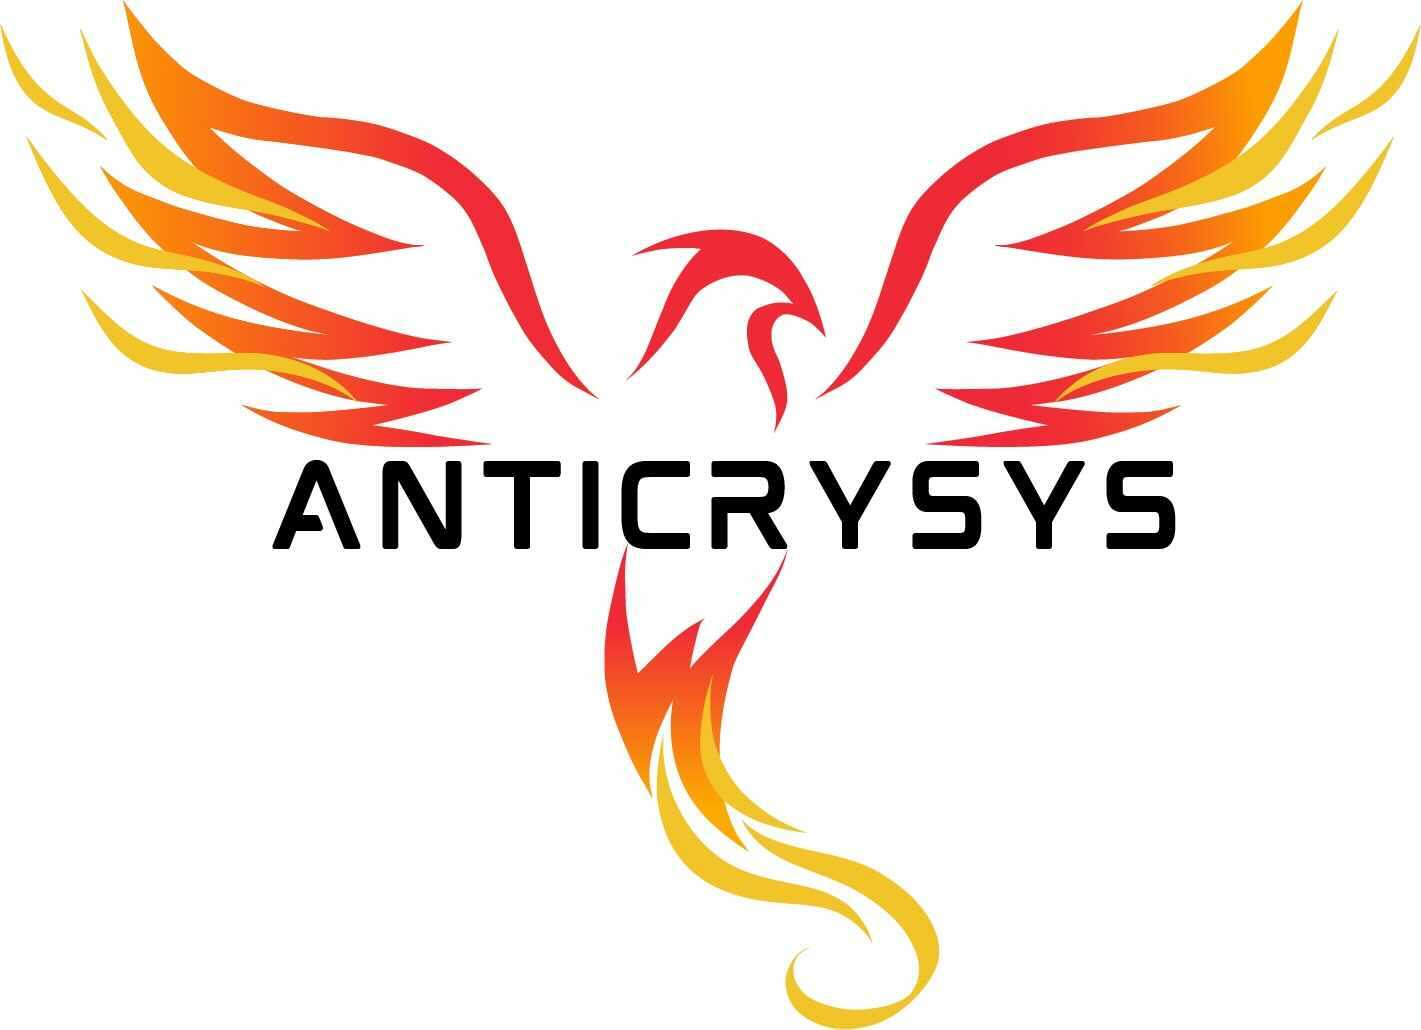 AntiCrysys Post Breach Crisis Management